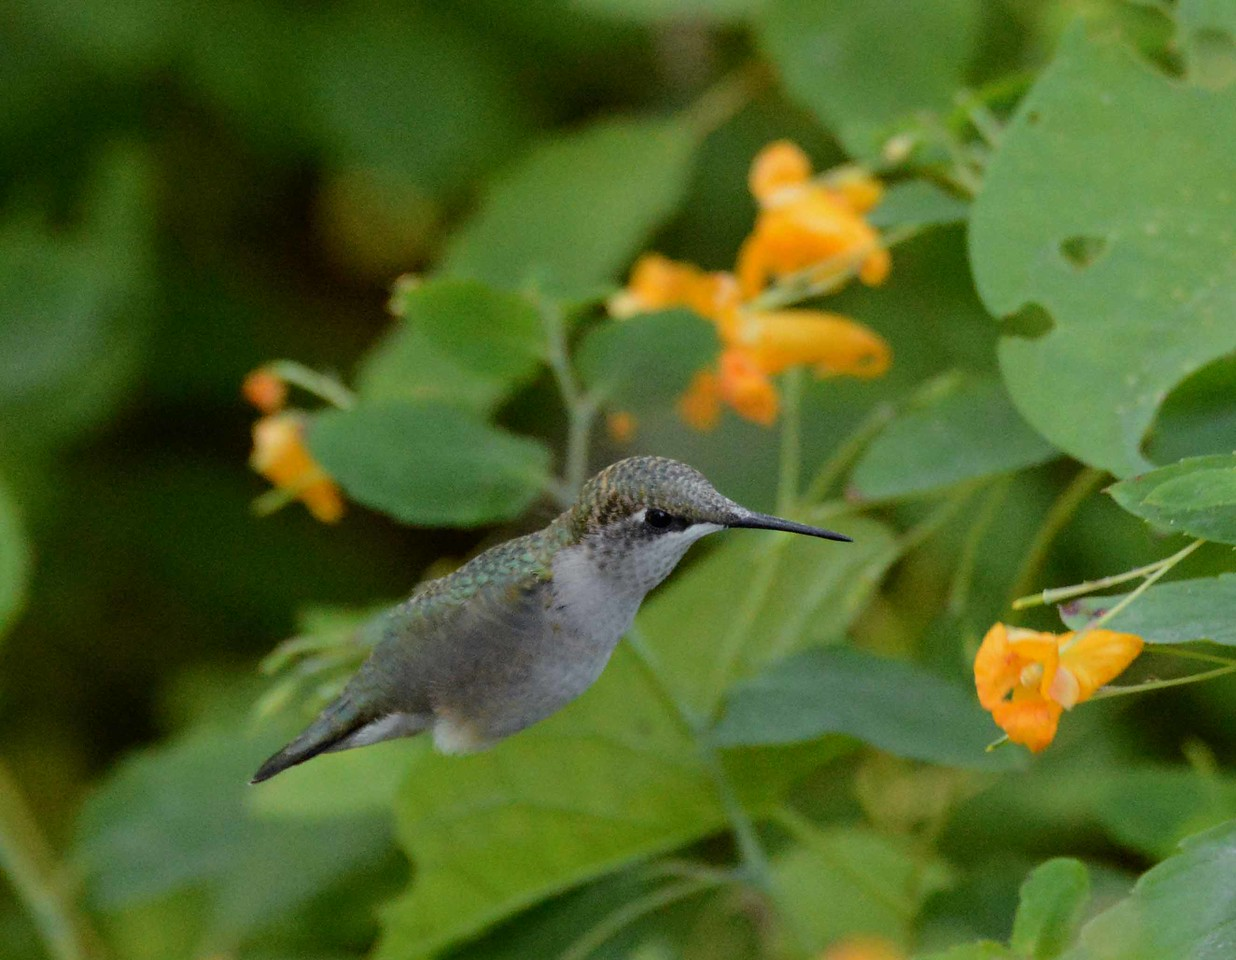 and at that the mother went too and saw<br /> the hummingbird and at the sight of its